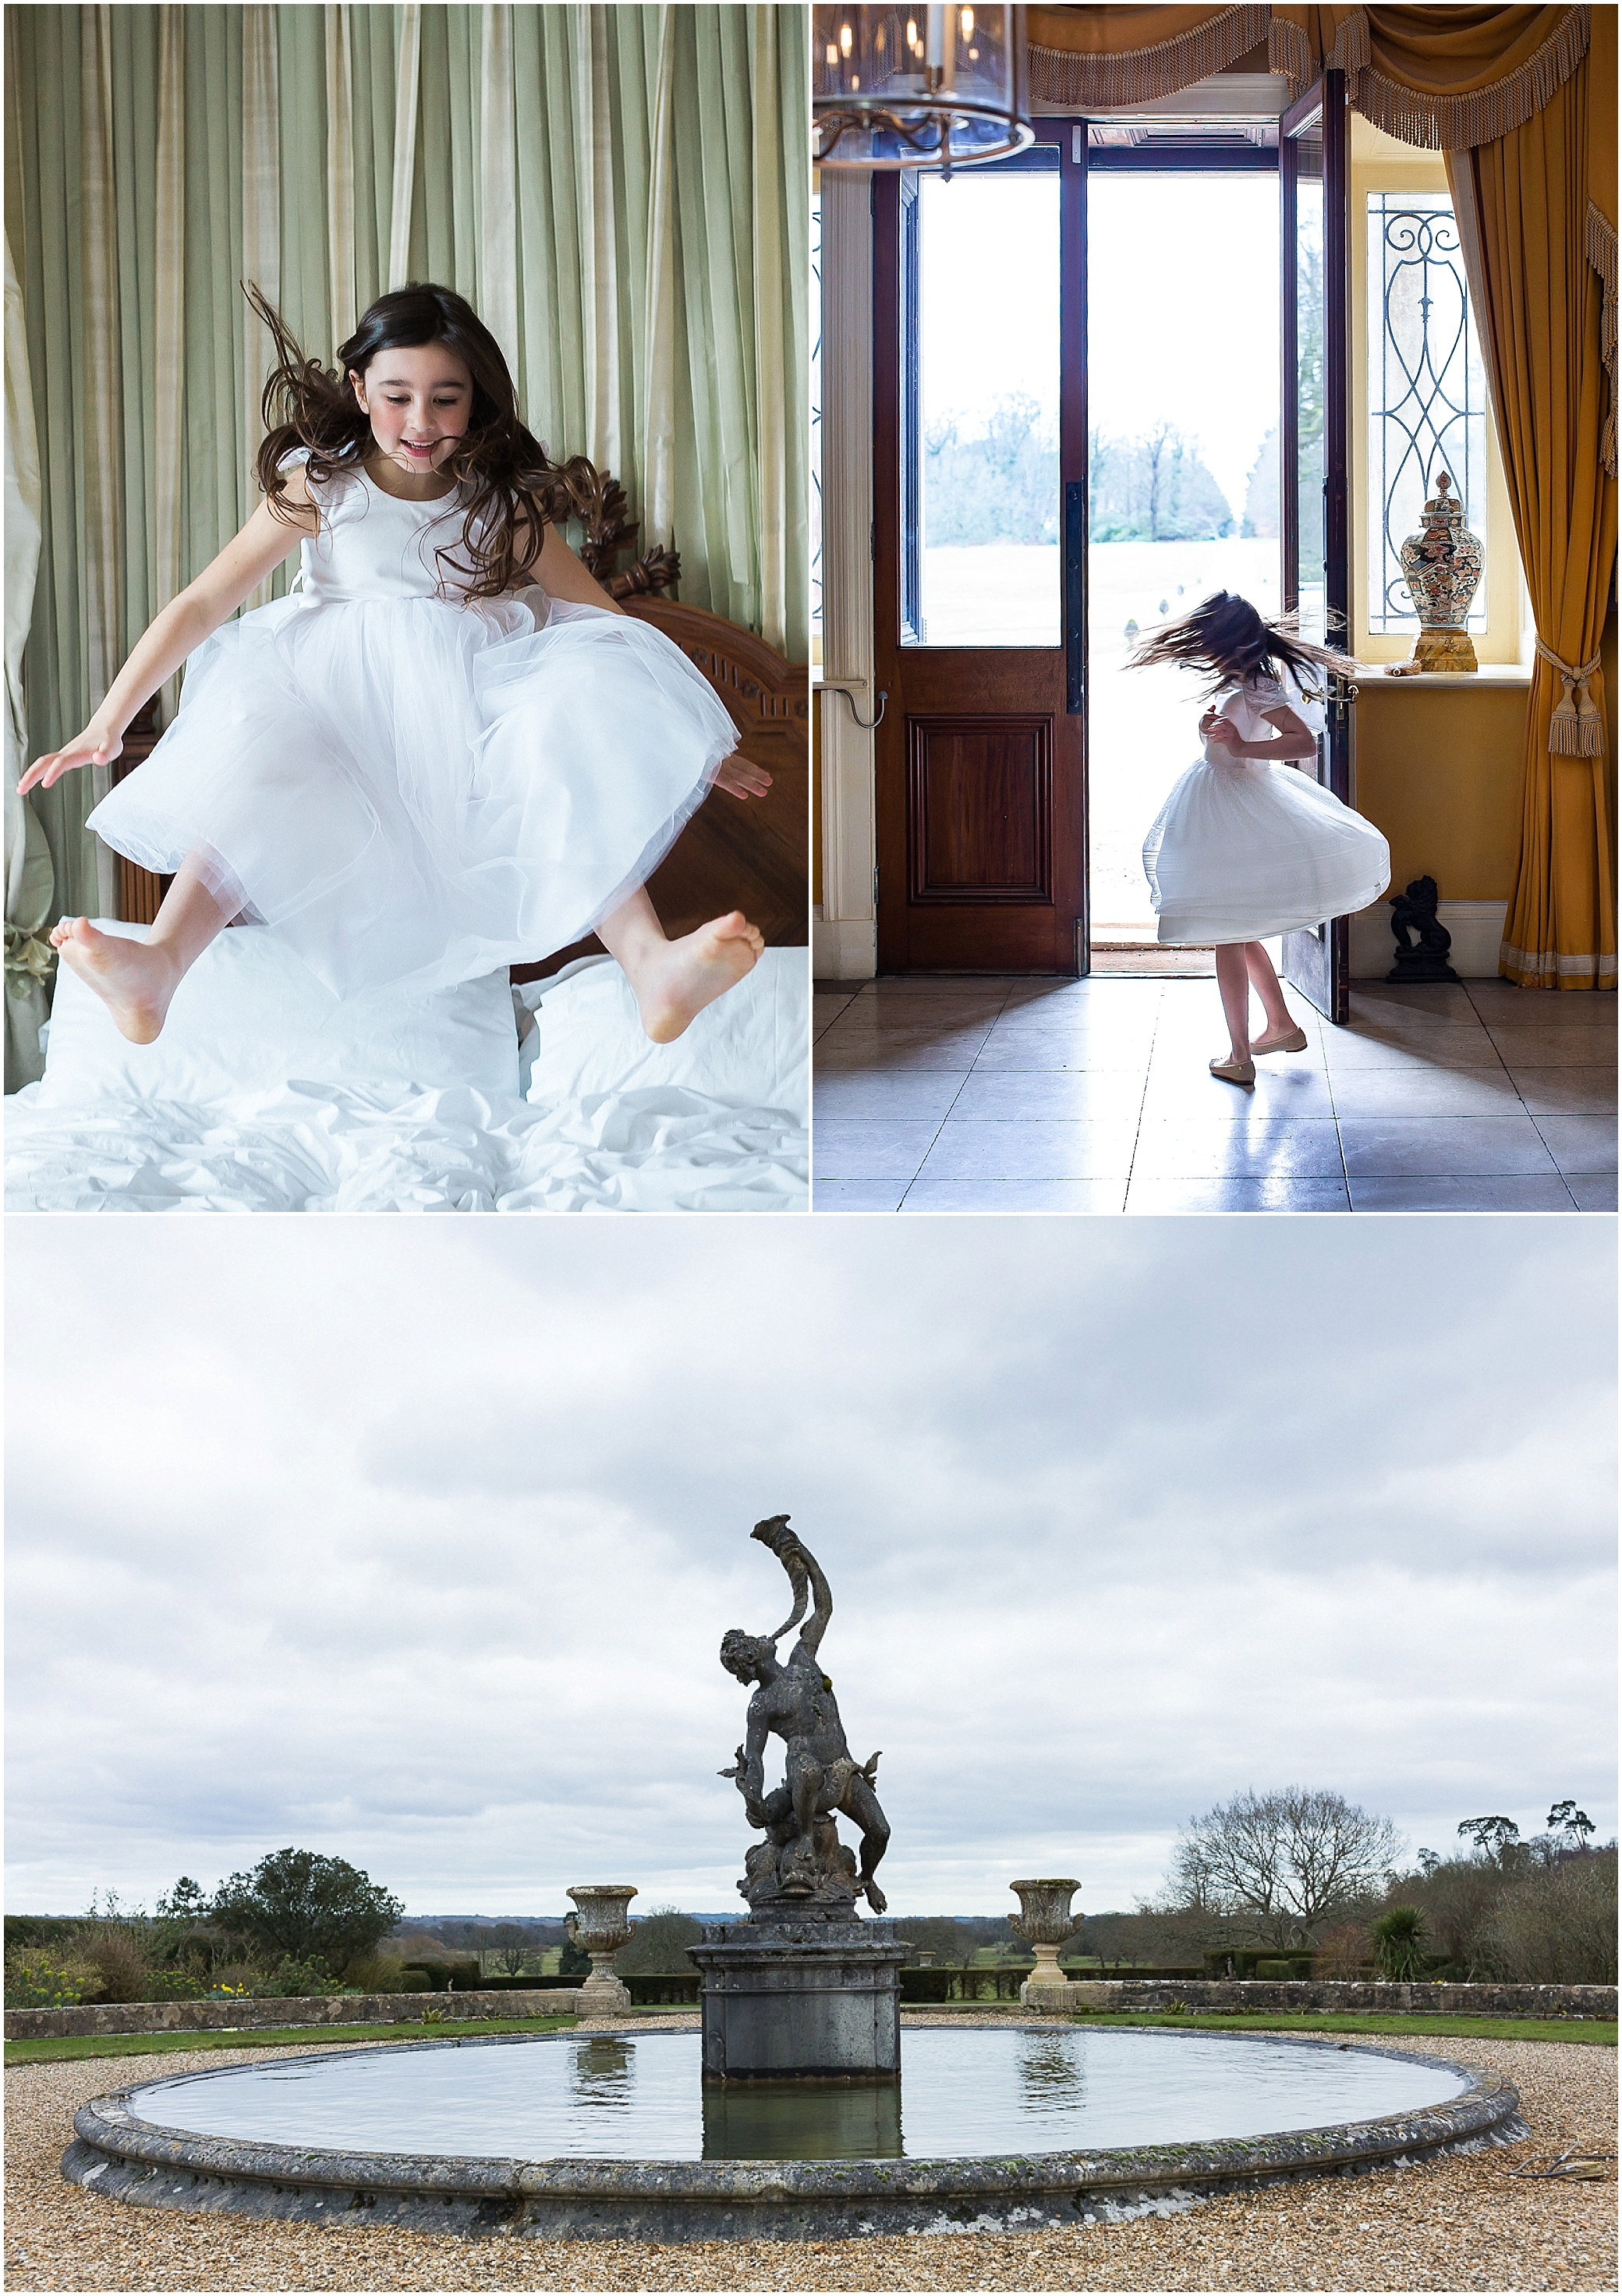 Flower girl jumping on bed, dancing and statue outside Somerley House